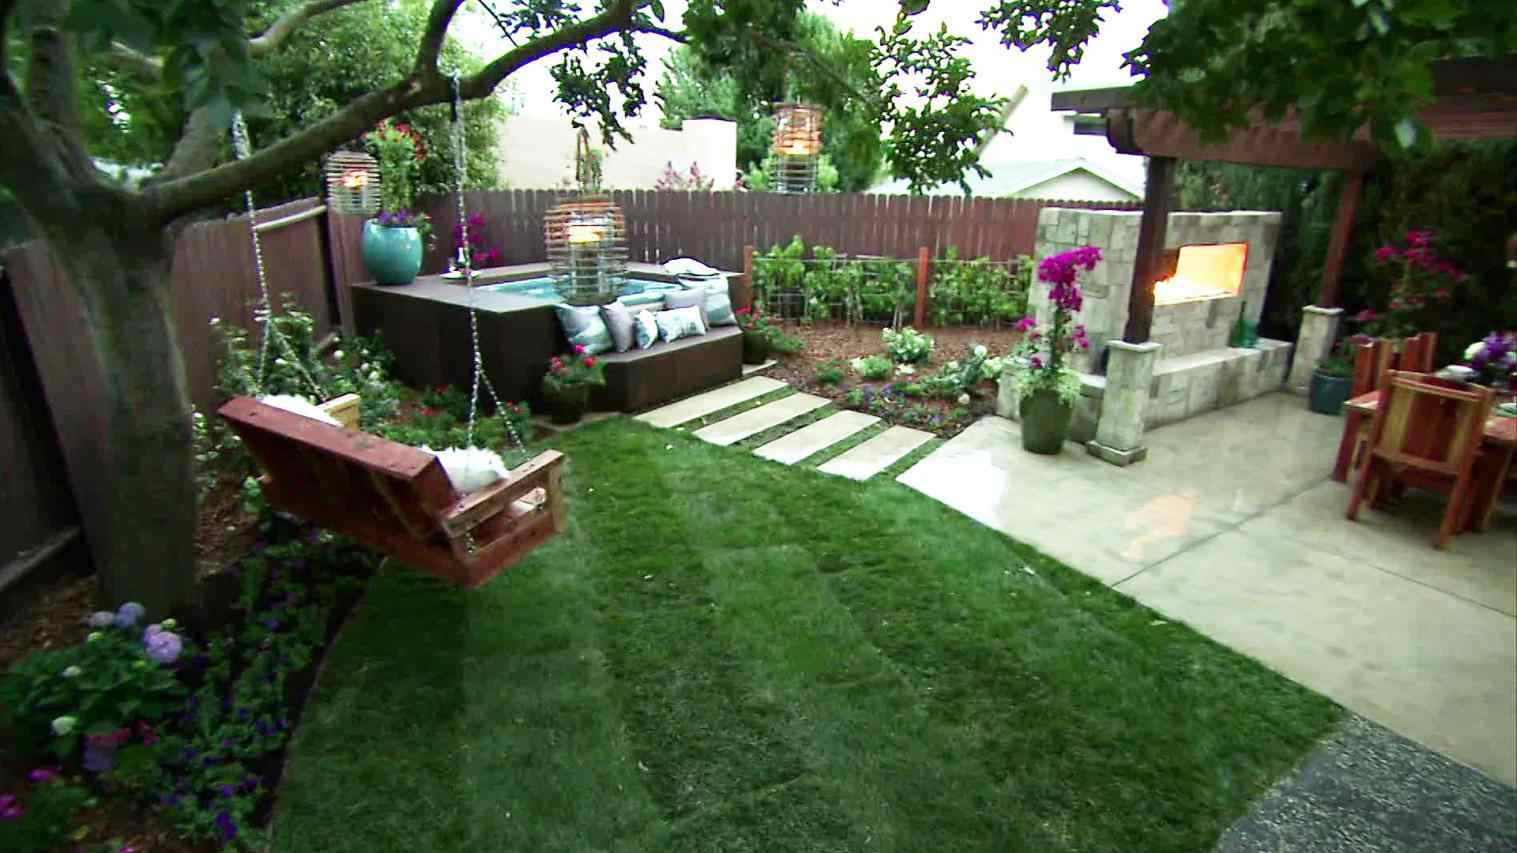 Backyard Landscaping Ideas With Hot Tub Fleagorcom Fire Simple Back inside Backyard Ideas With Hot Tub